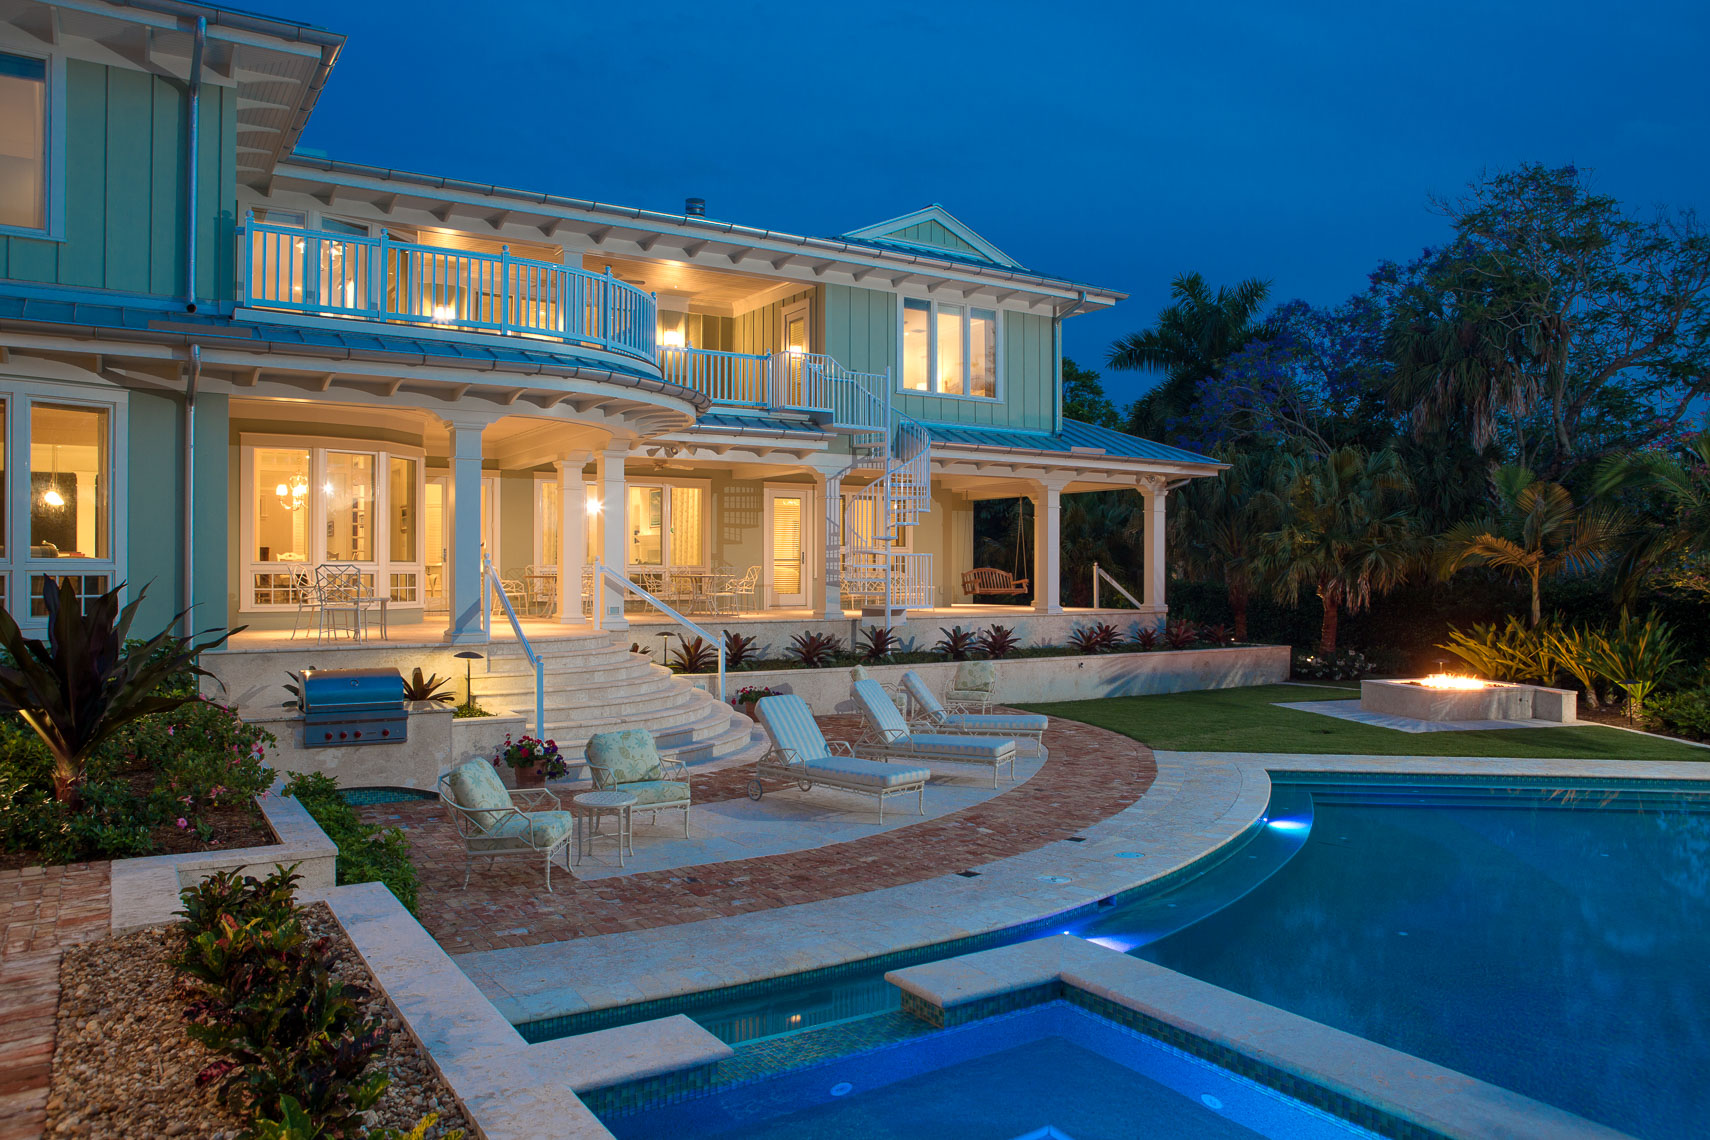 Coastal Living - Mark Borosch Photography - Naples, FL